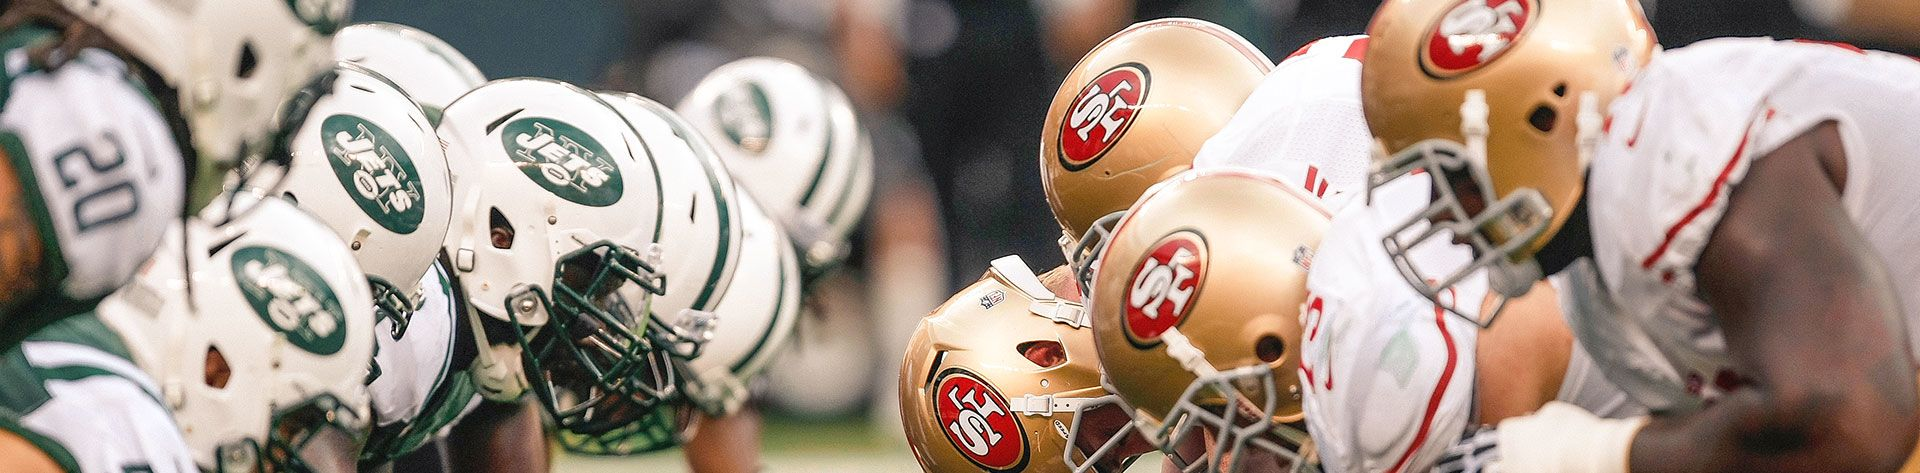 San Francisco 49ers At New York Jets On September 20 2020